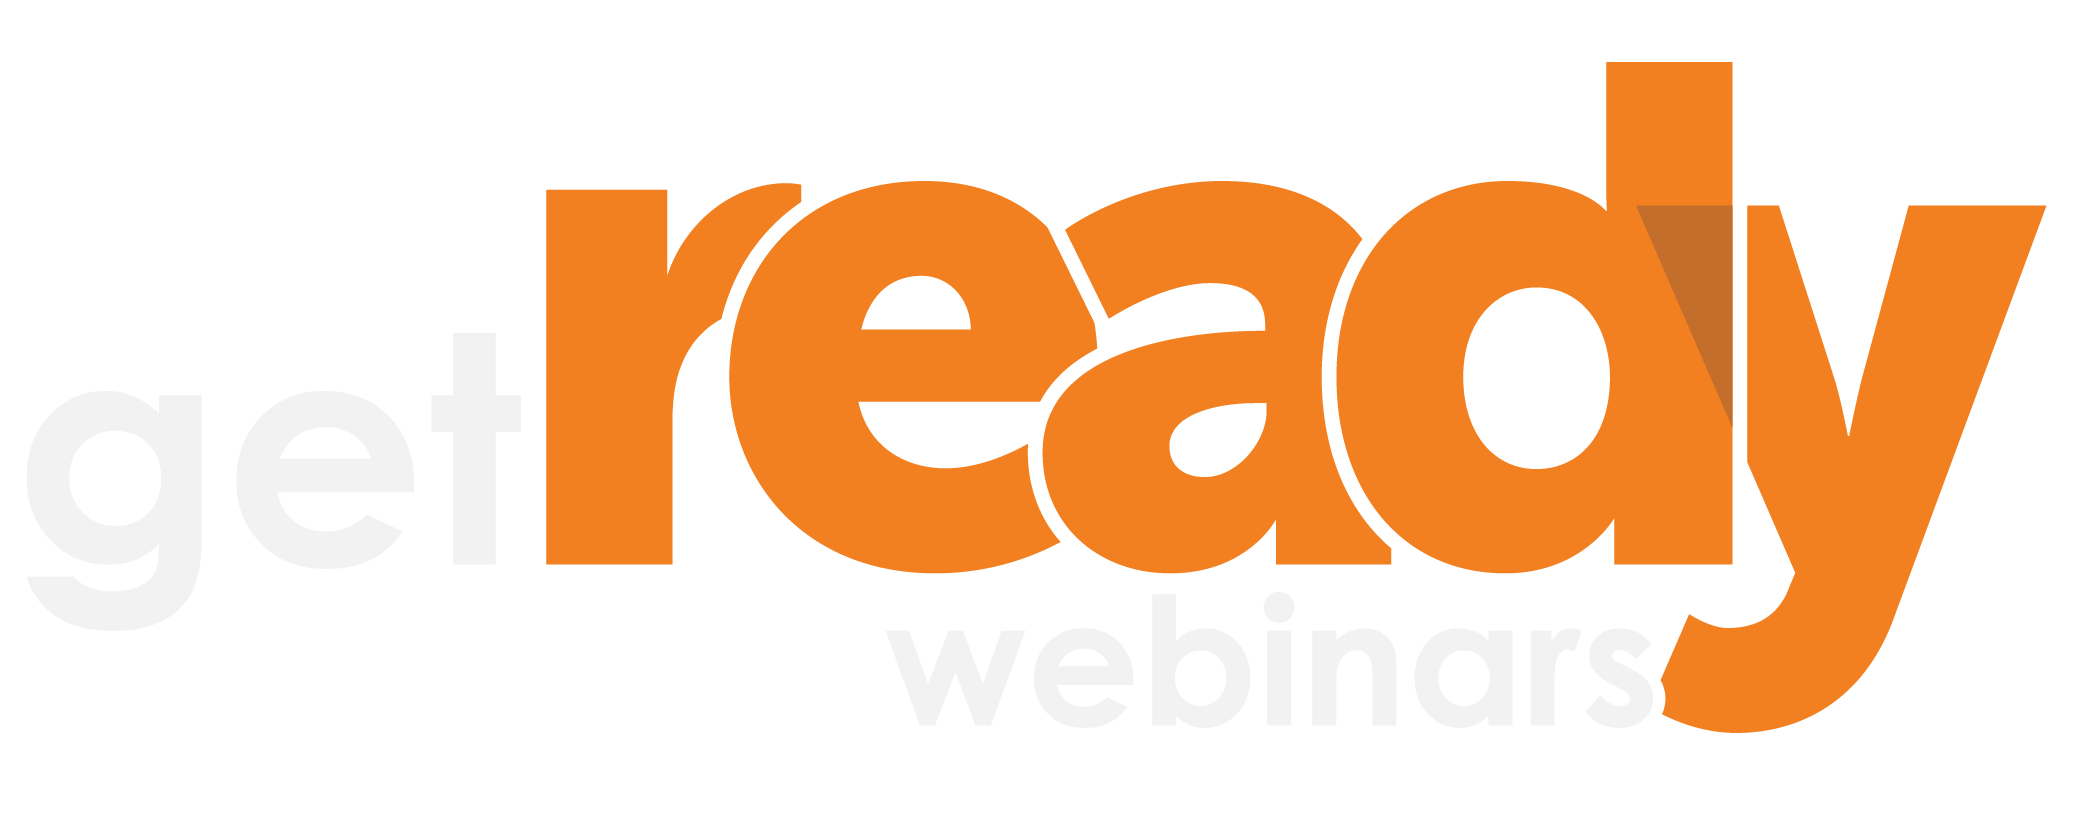 getready-webinars